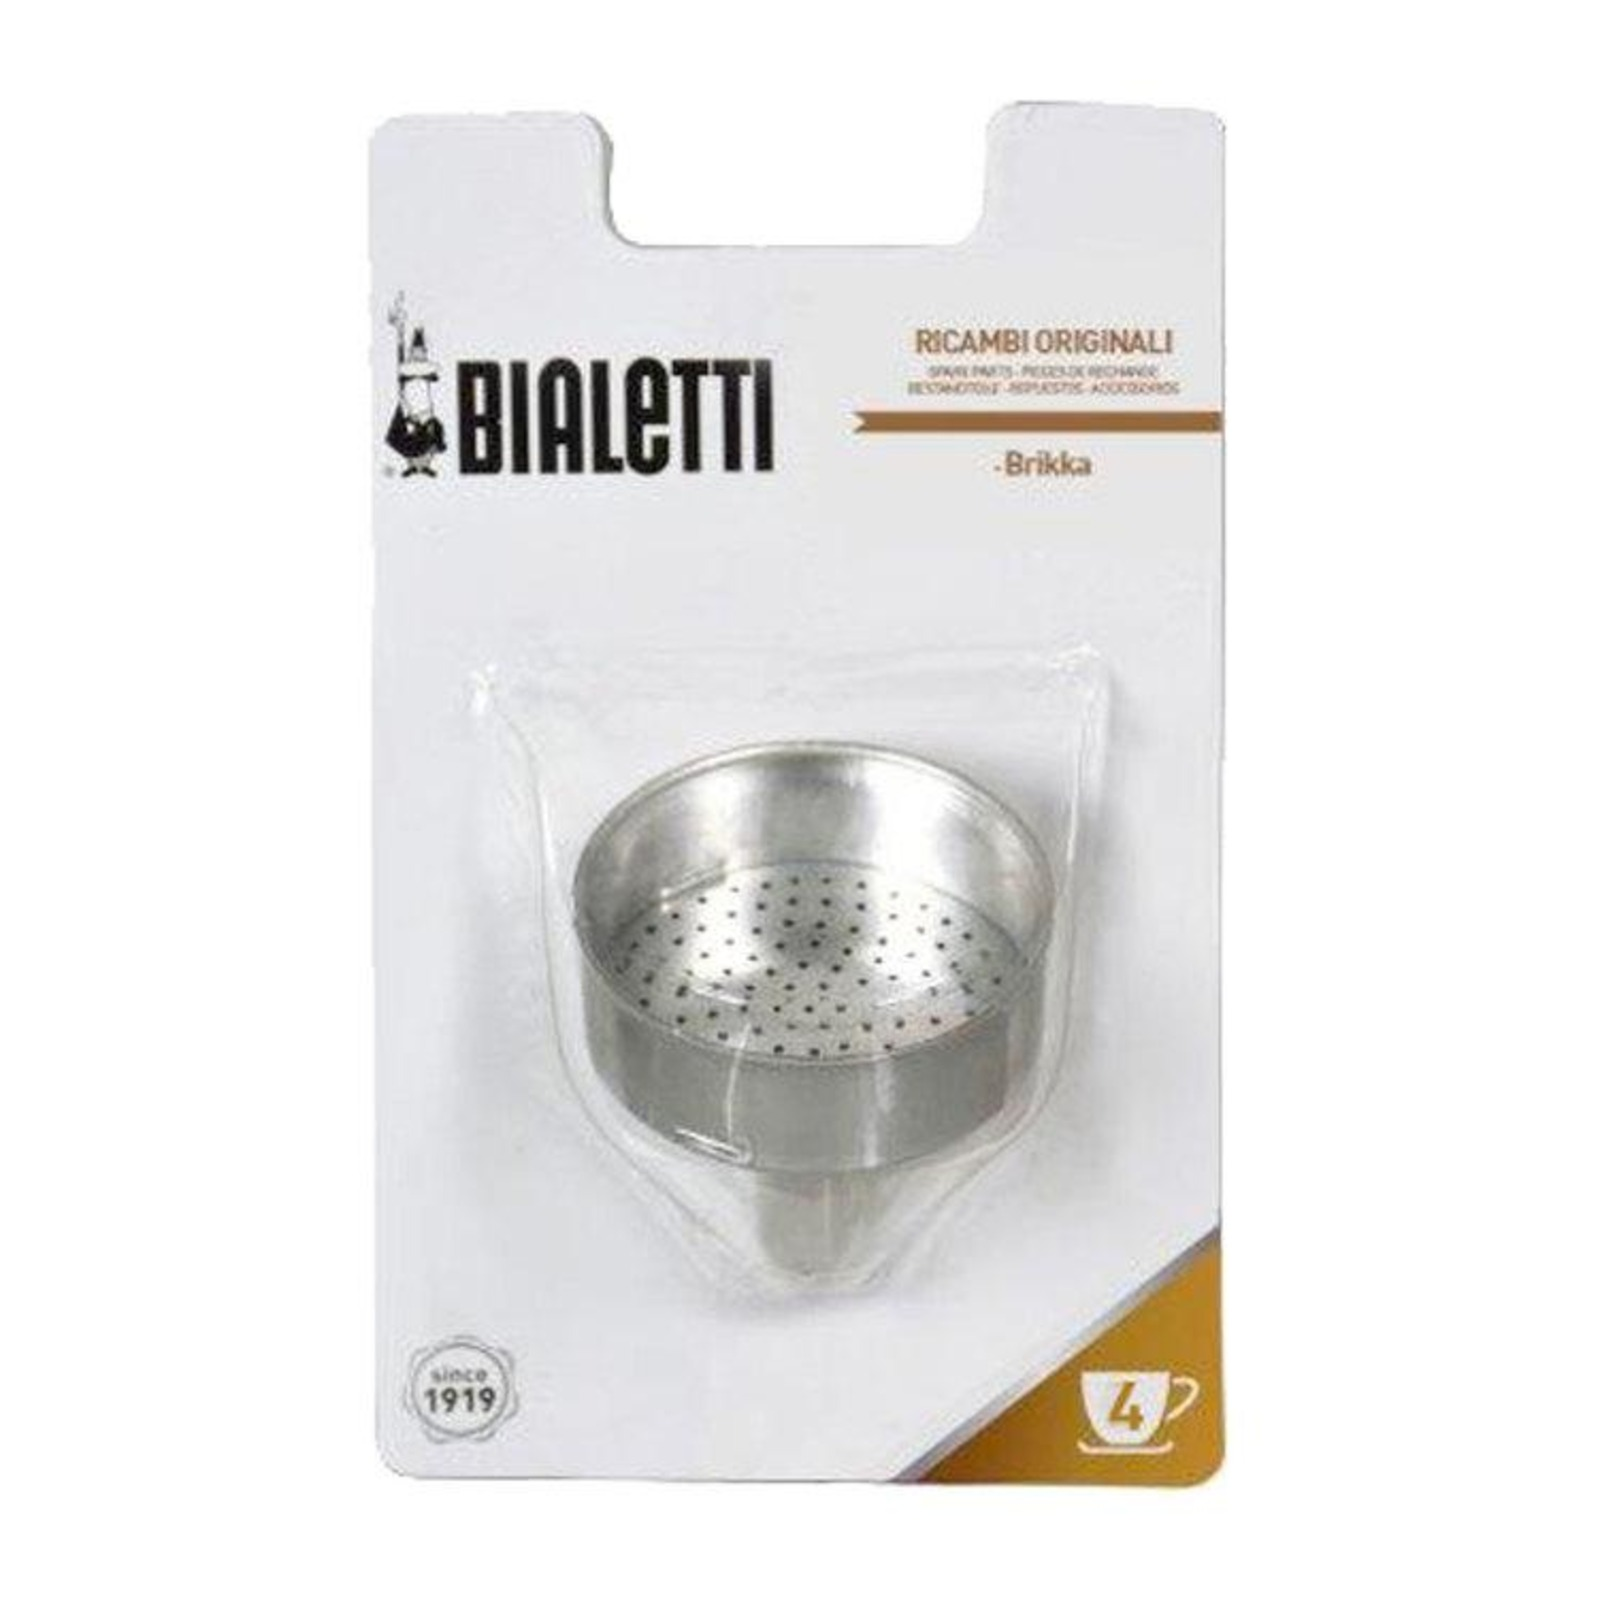 Bialetti Replacement Funnel Brikka 4 Cups